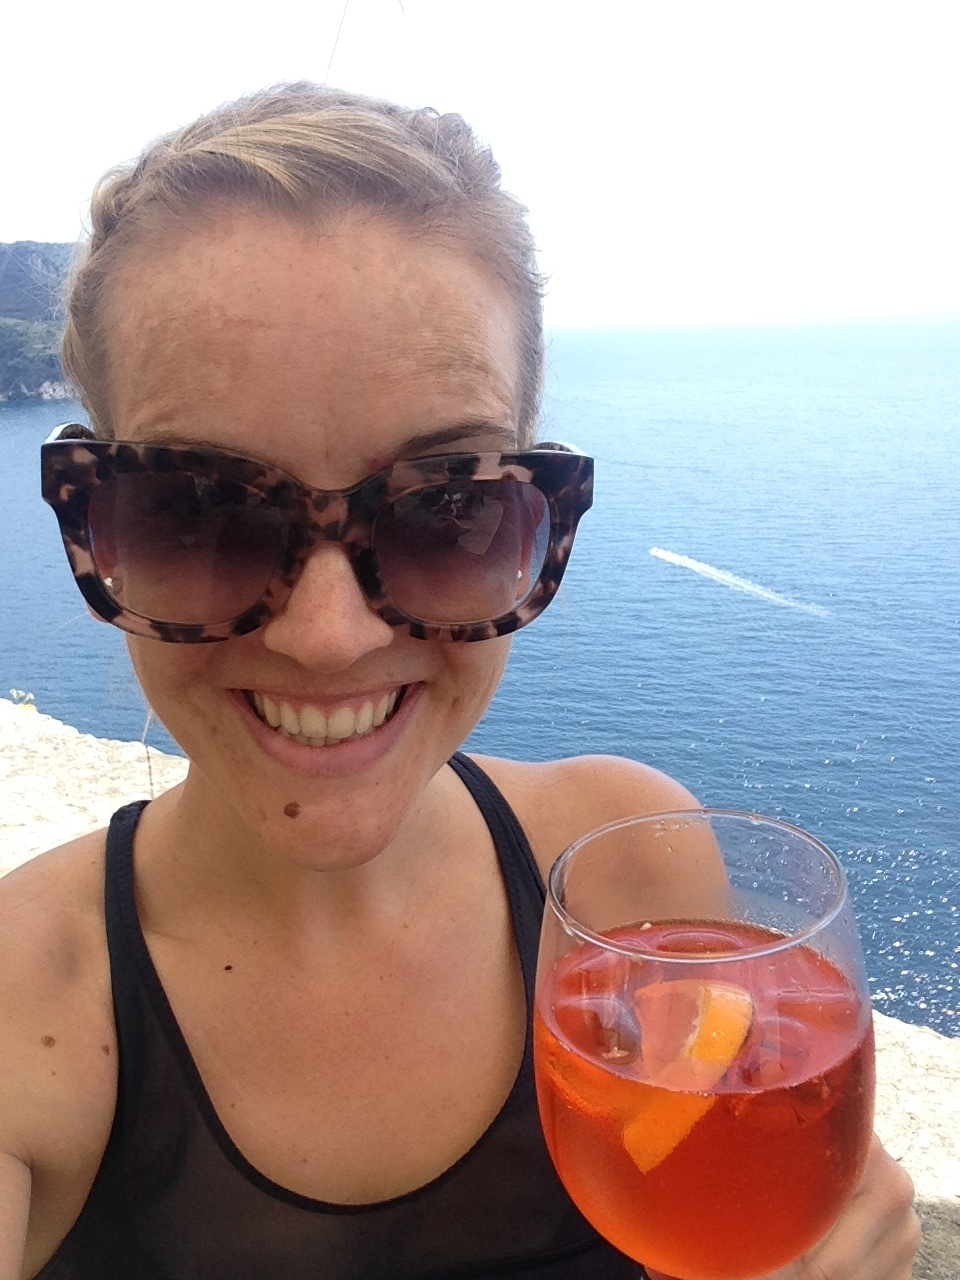 Corniglia: Post-hike Aperol spritz at Bar Terza Terra!